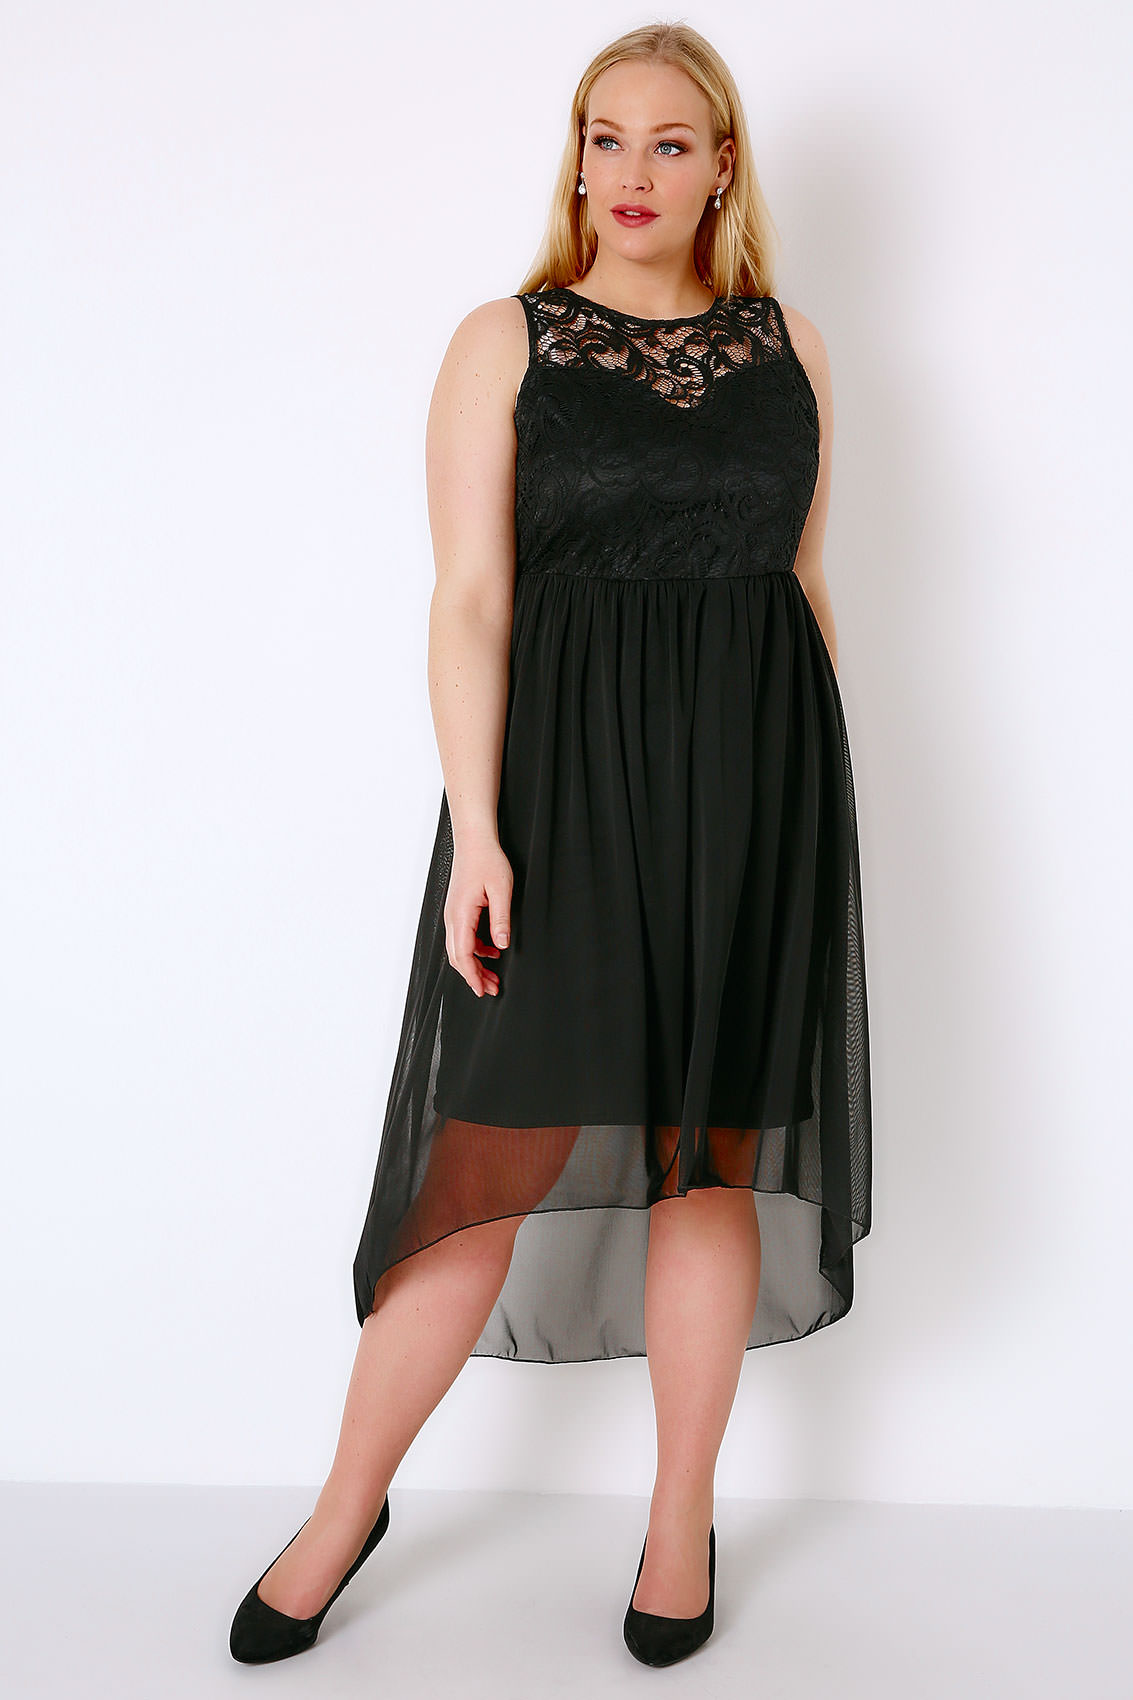 black lace mesh sleeveless dress with dipped hem plus size 16 to 32. Black Bedroom Furniture Sets. Home Design Ideas